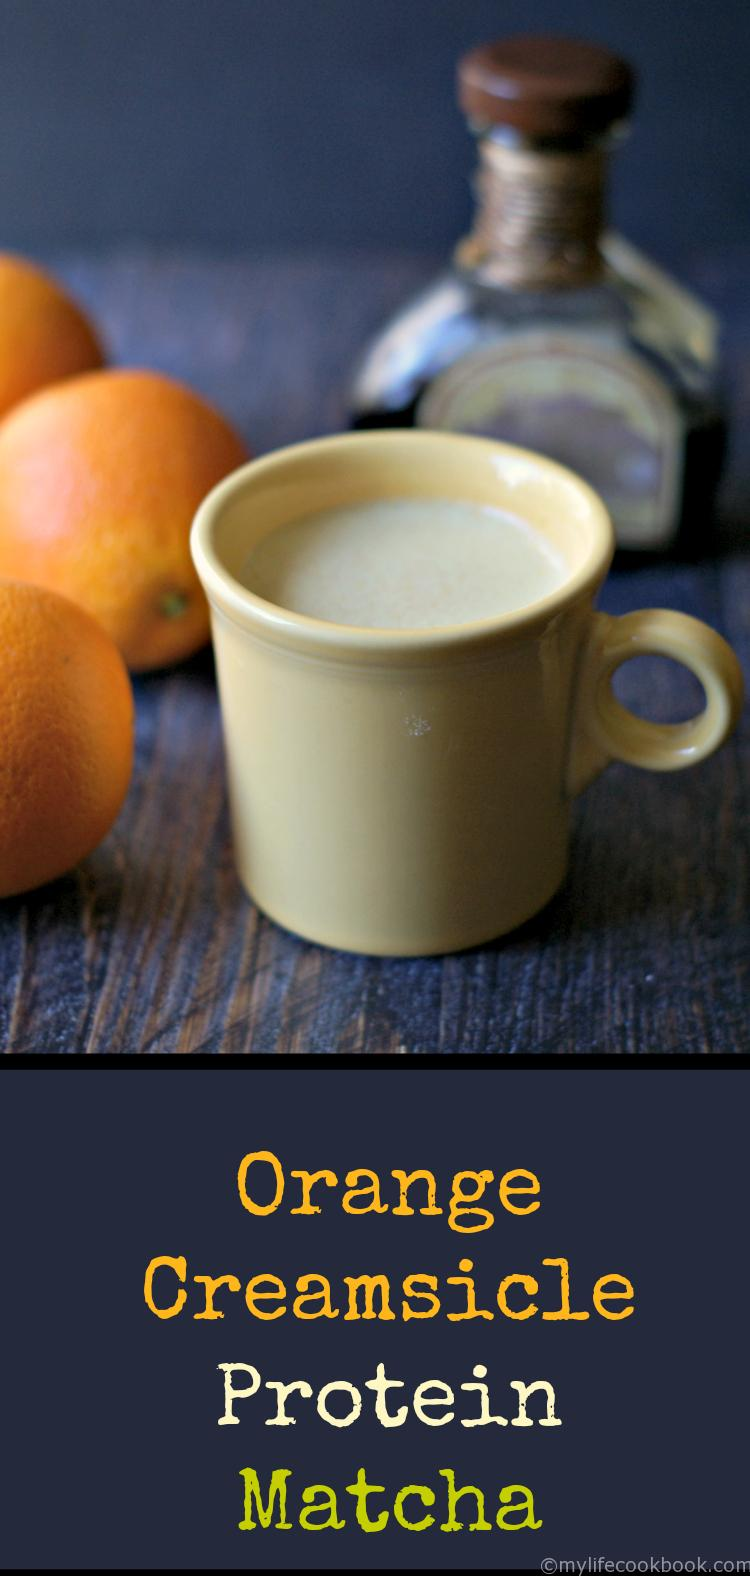 Enjoy the benefits of matcha tea in this tasty orange creamsicle protein matcha drink. Low carb and delicious, a great way to start your morning.